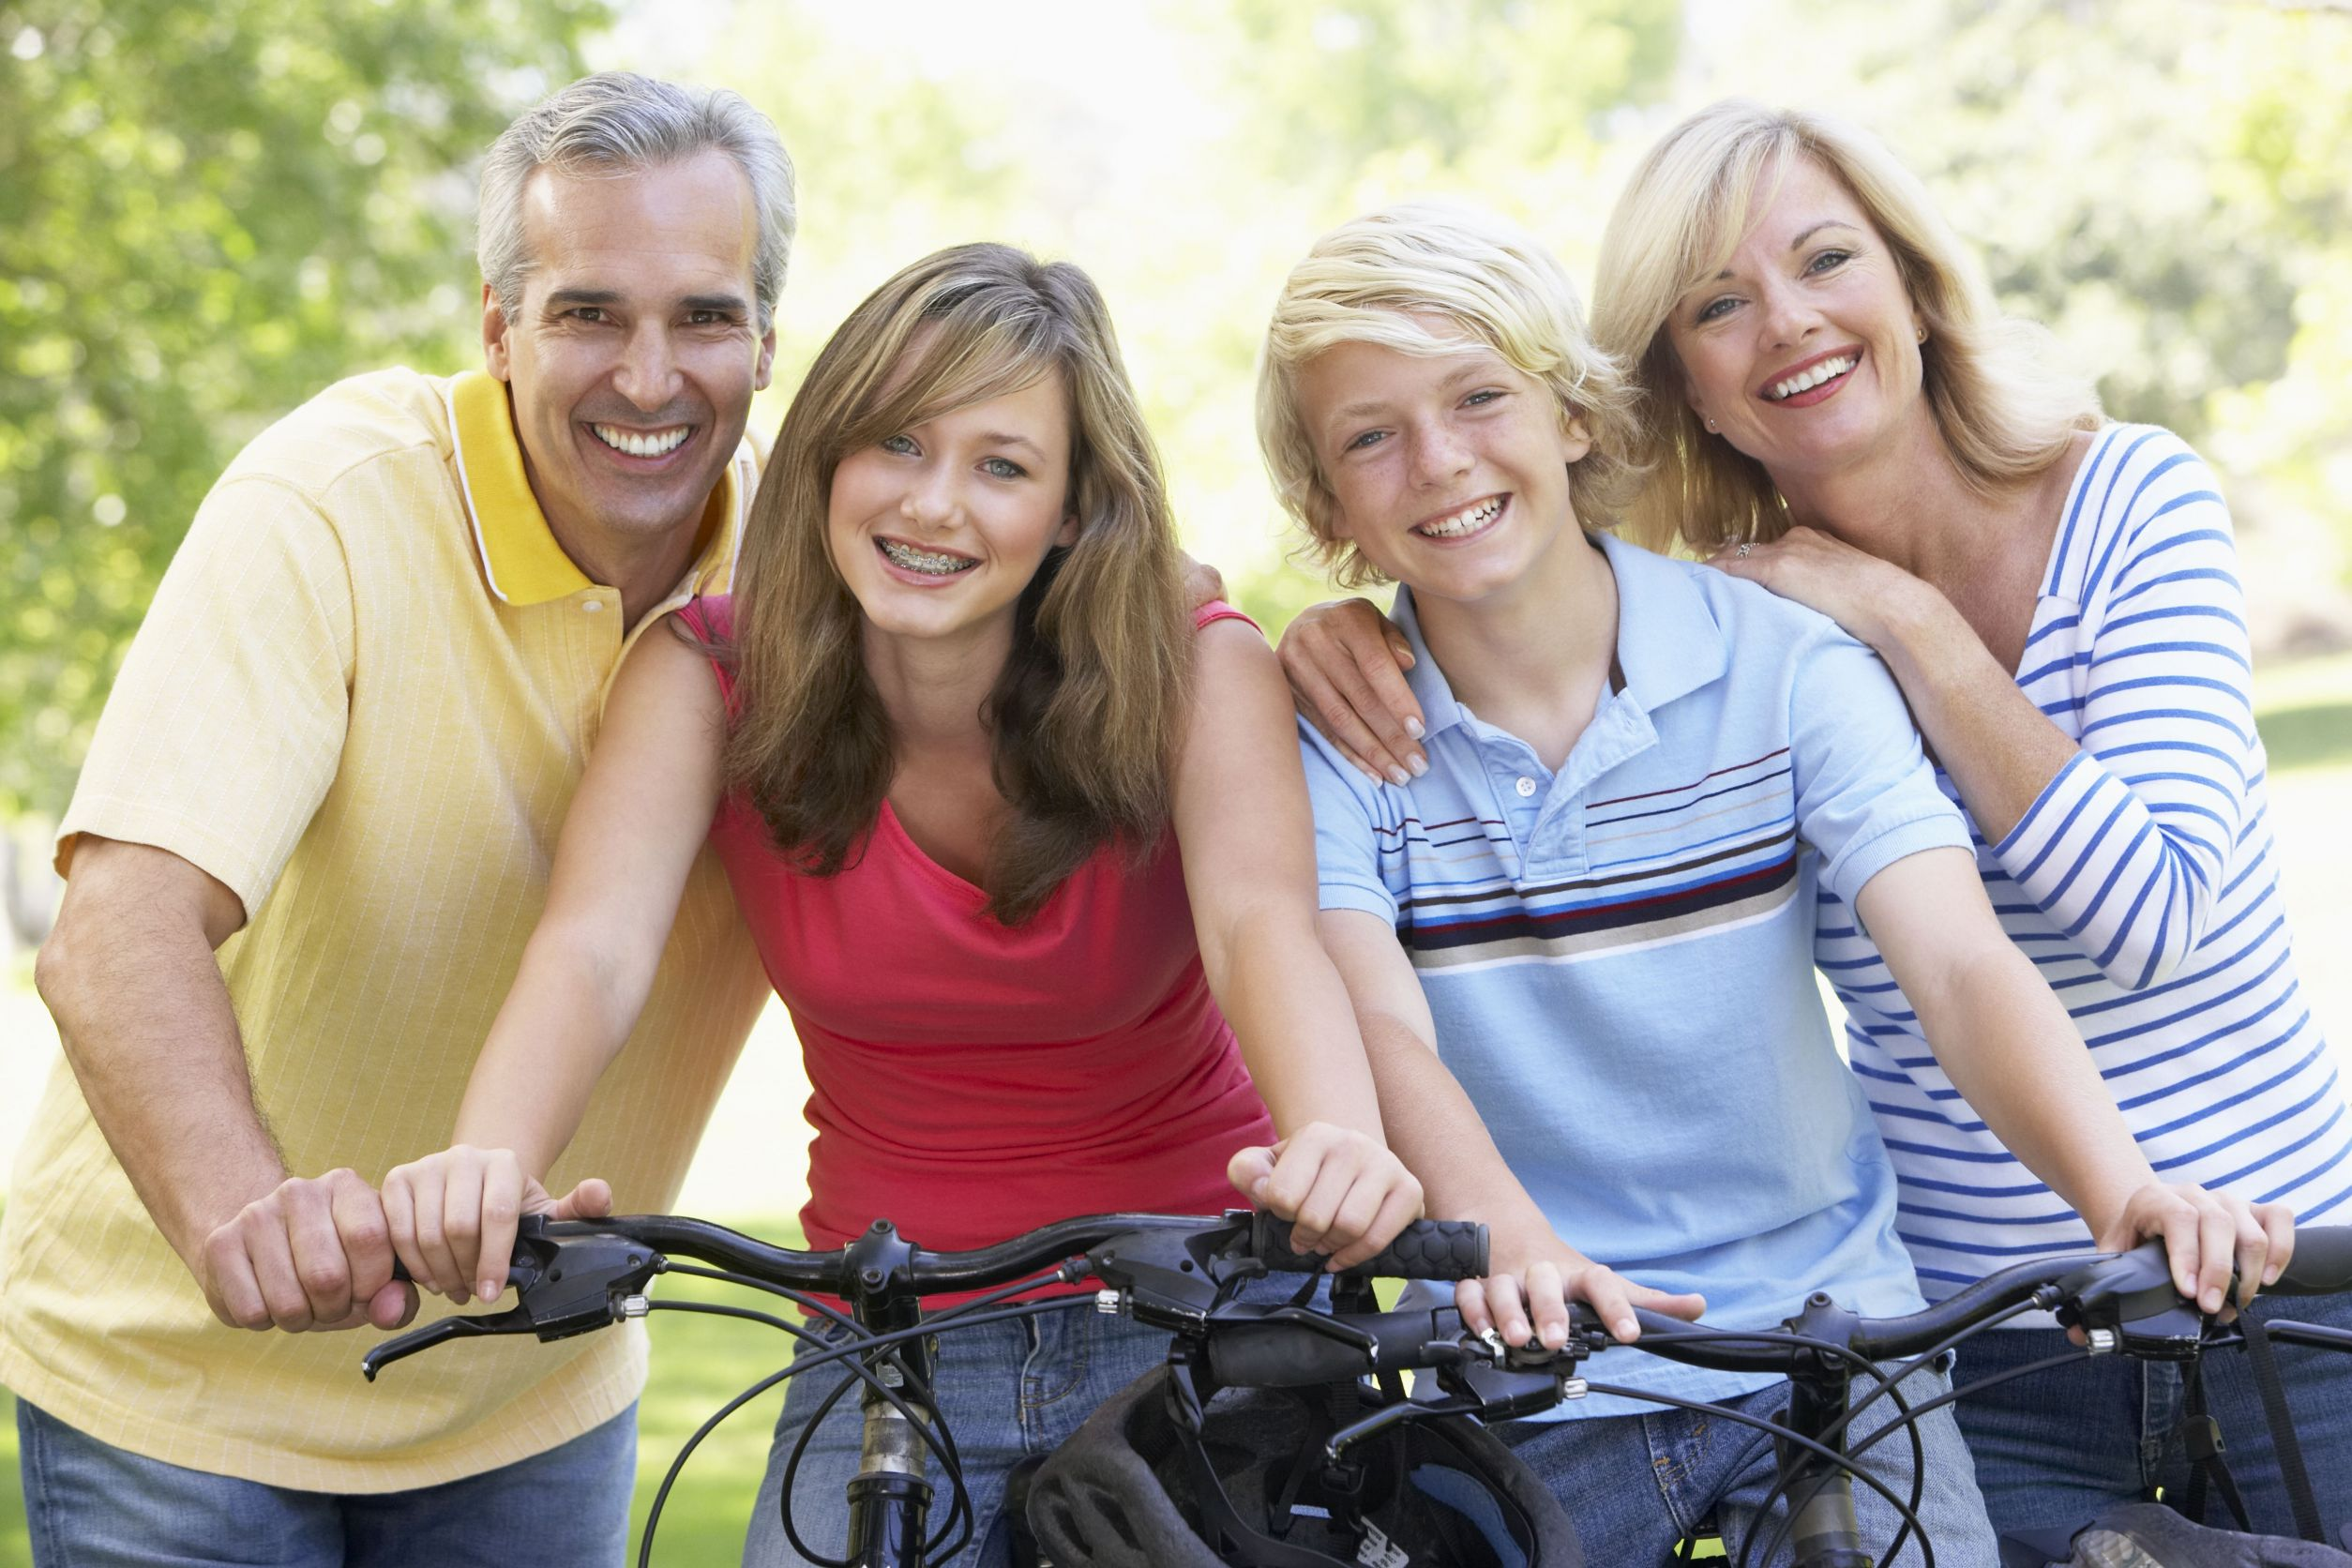 Family riding bikes and smiling